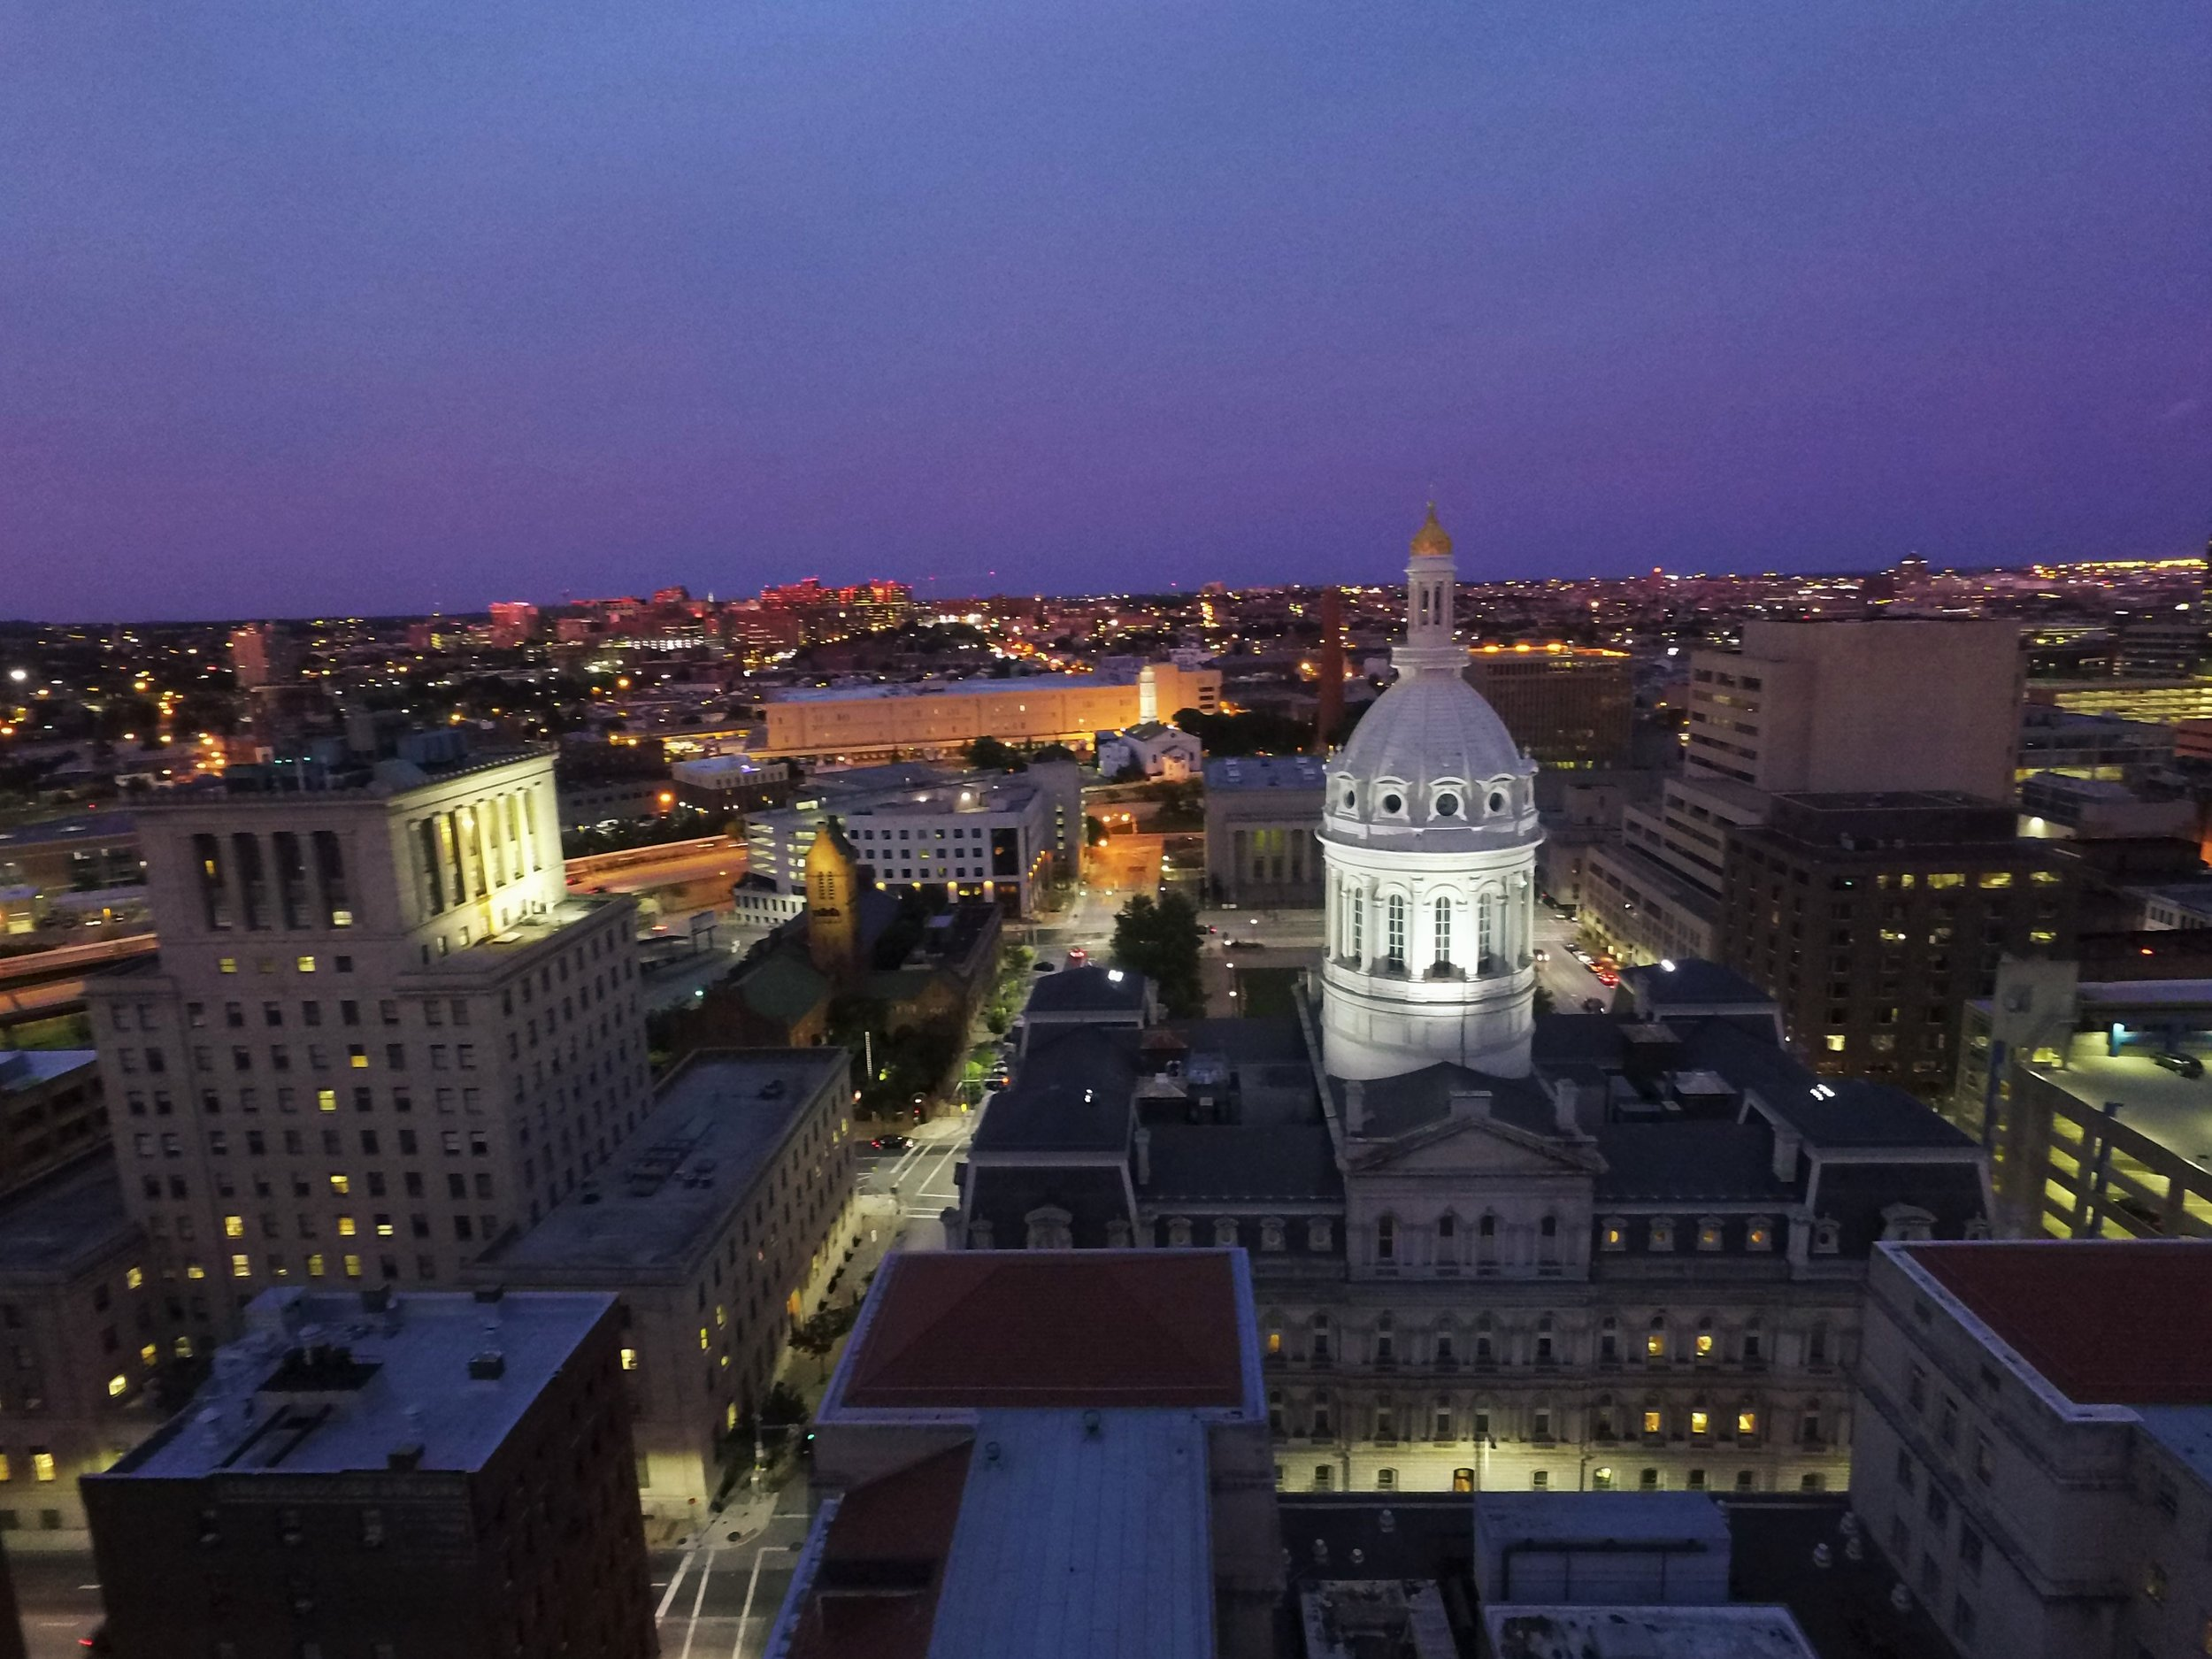 Still image of Baltimore City Hall from above. Shot by drone during dusk. Blue skies and city lights abound.